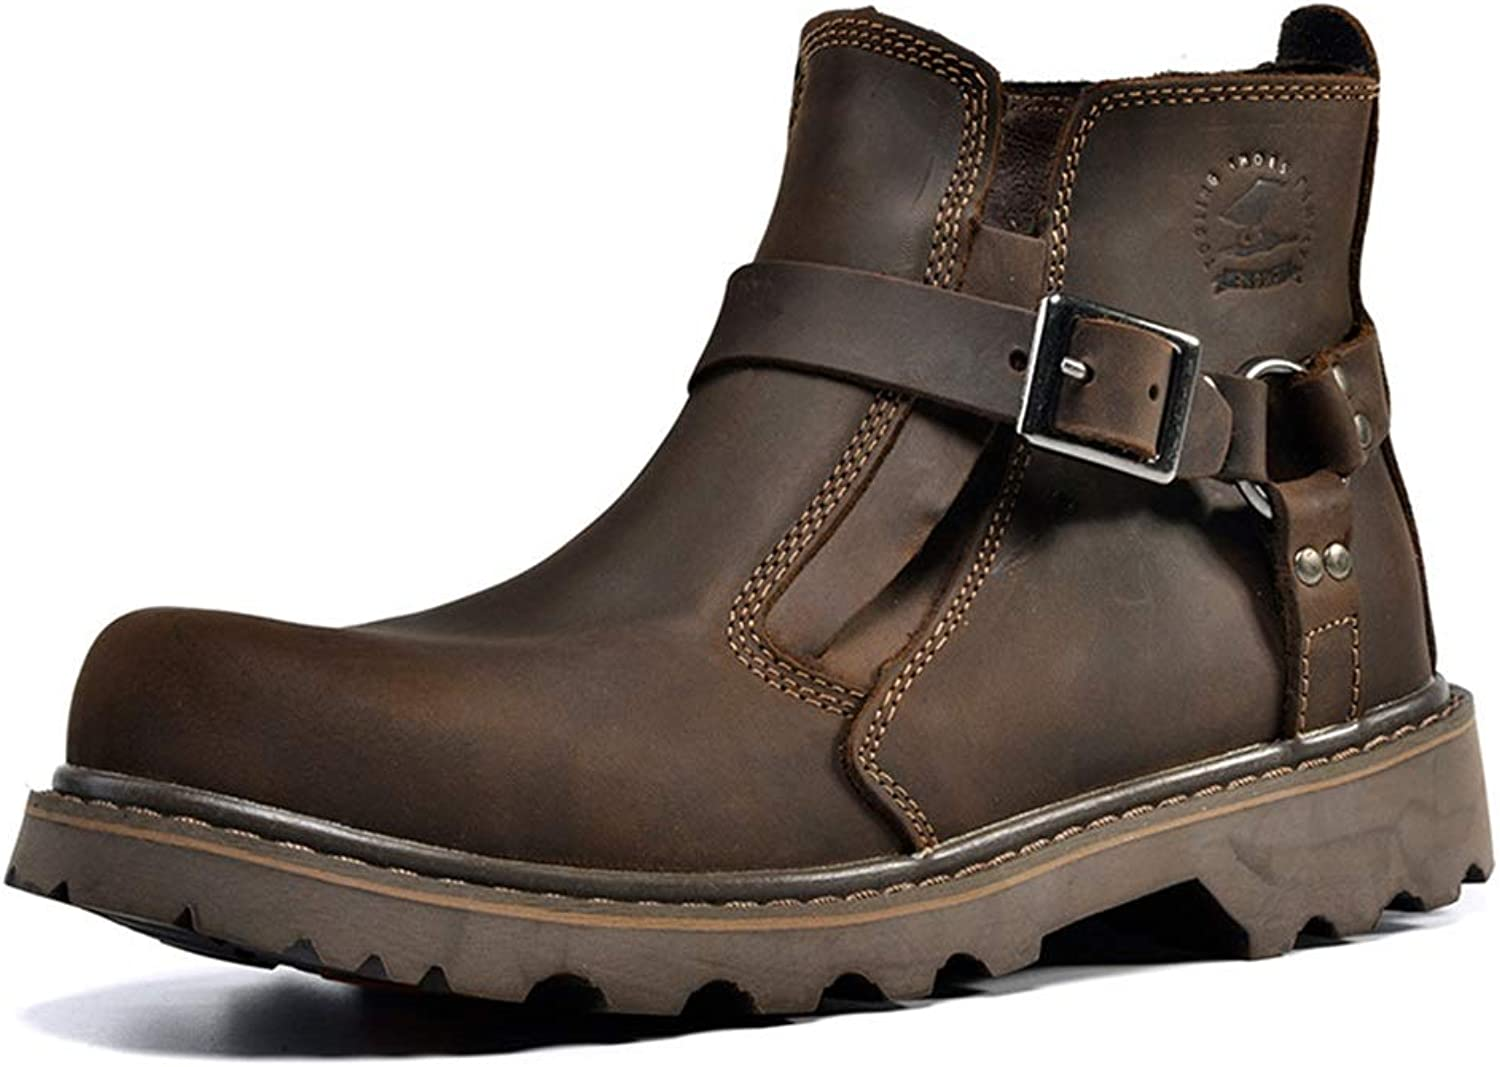 Genuine Leather Buckle Boots for Men Soft Sole Non Slip Durable Casual Boots (color   Brown, Size   CA 8.5)